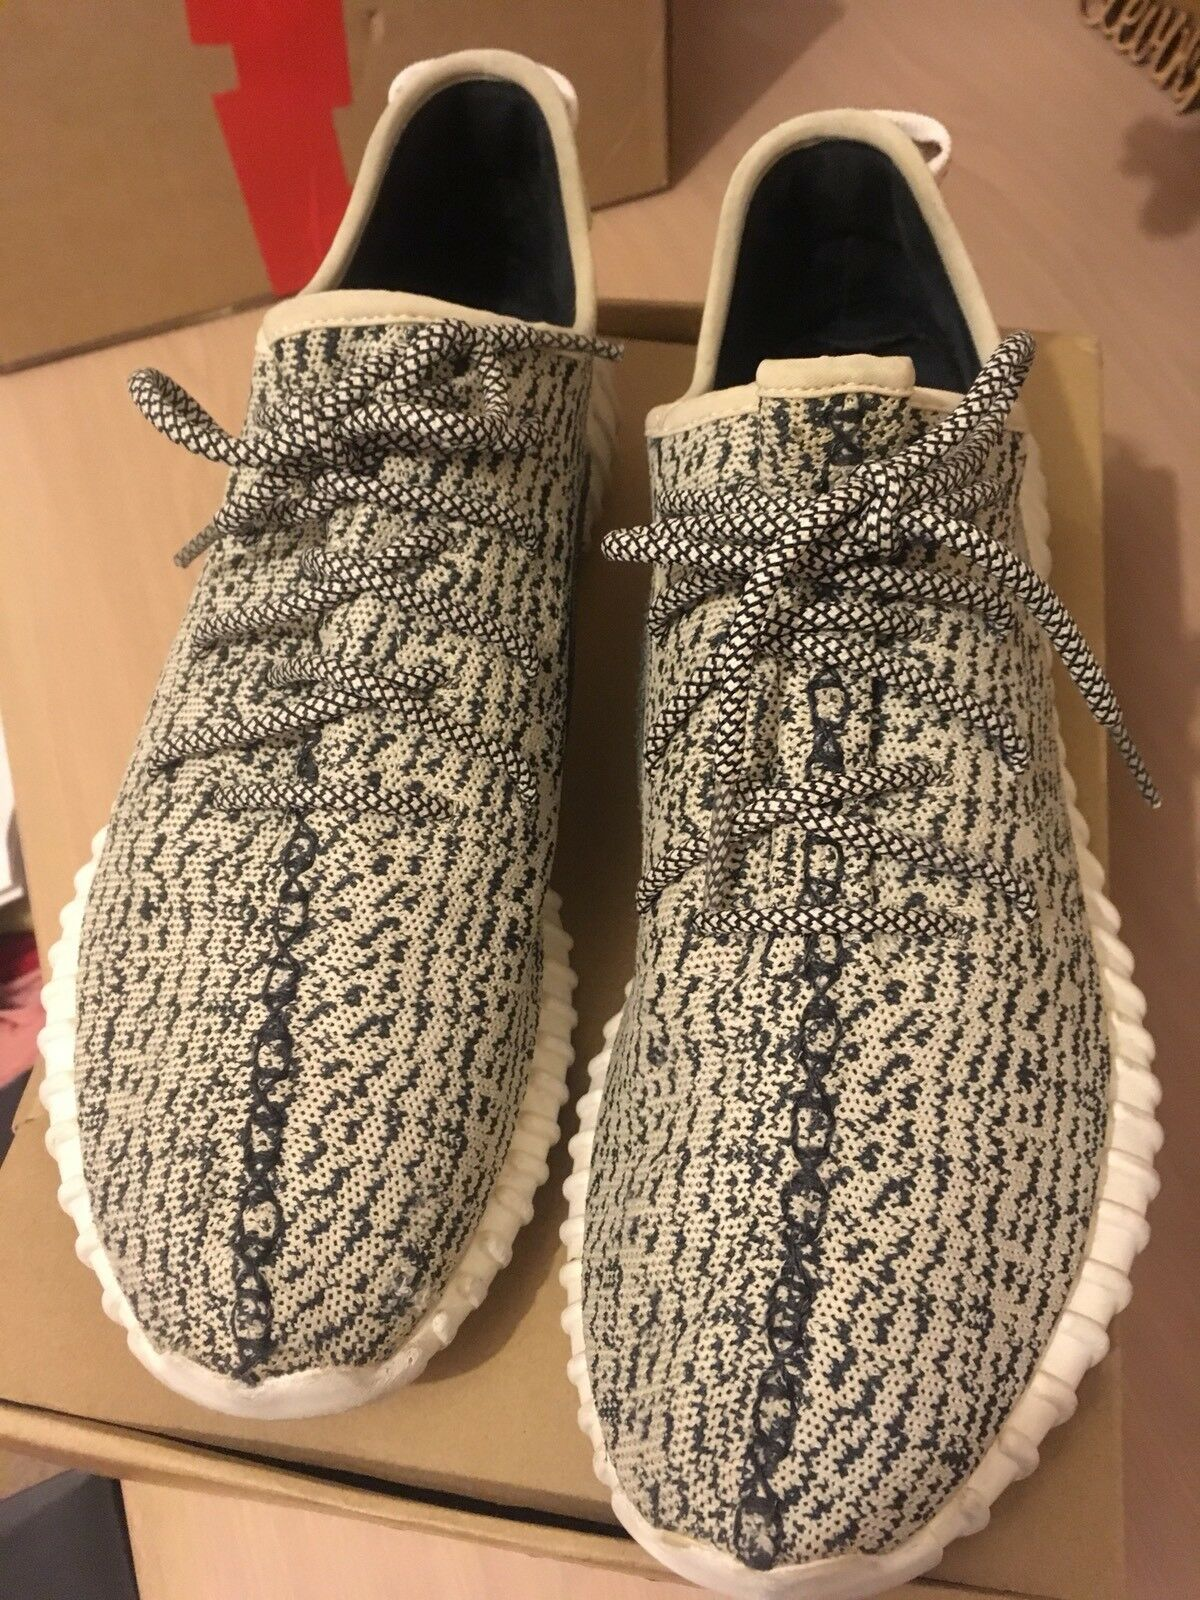 Adidas Yeezy 350 Turtle Dove US13